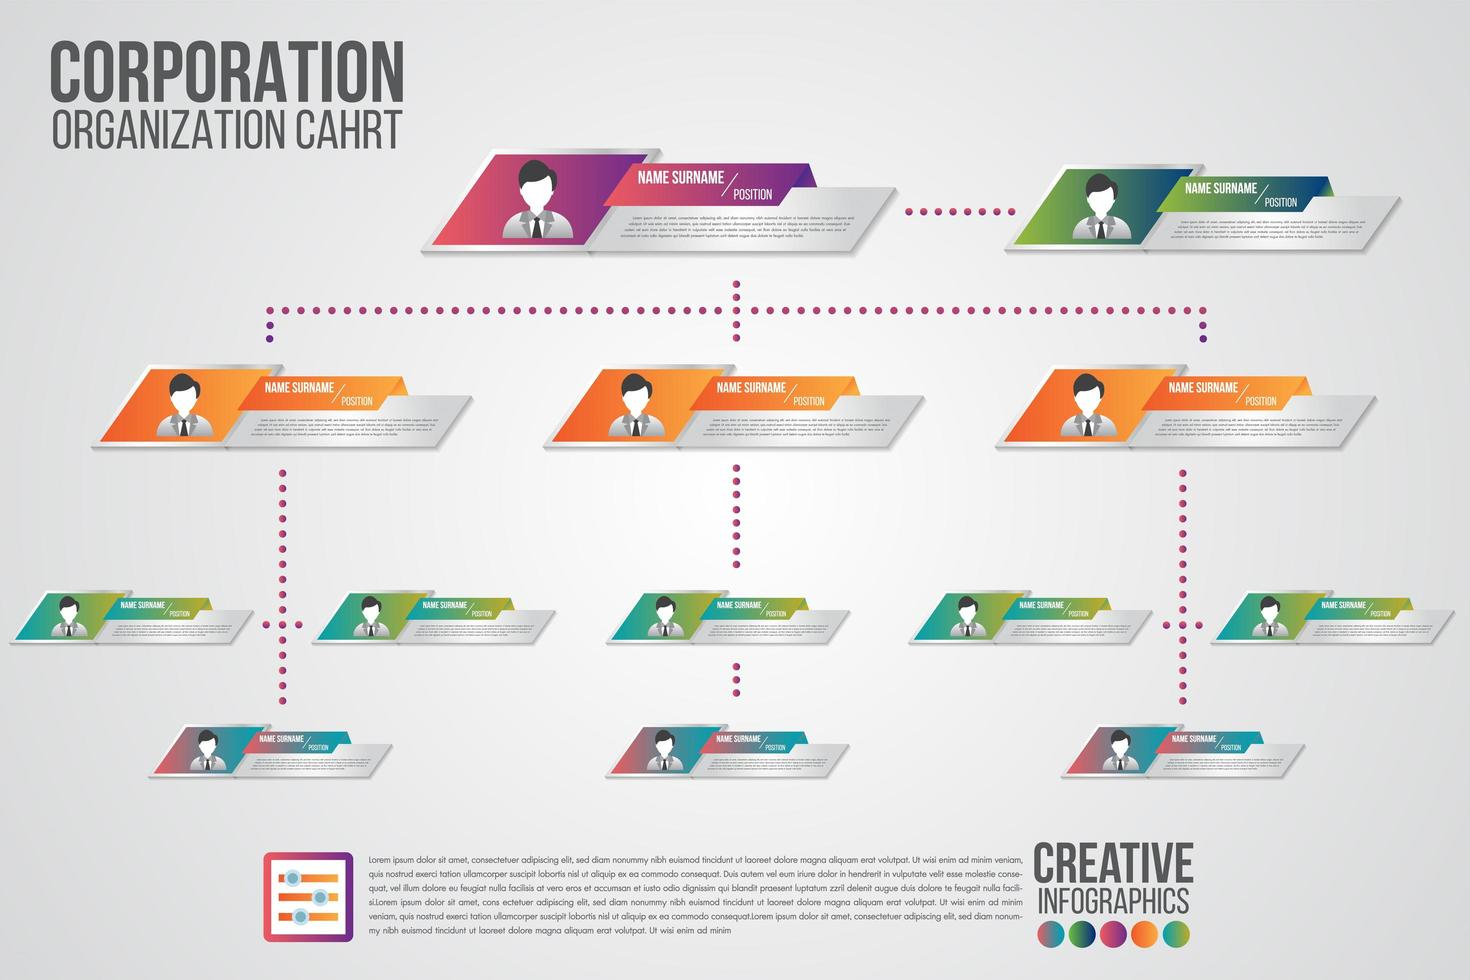 Corporate organization chart template with business people icons vector